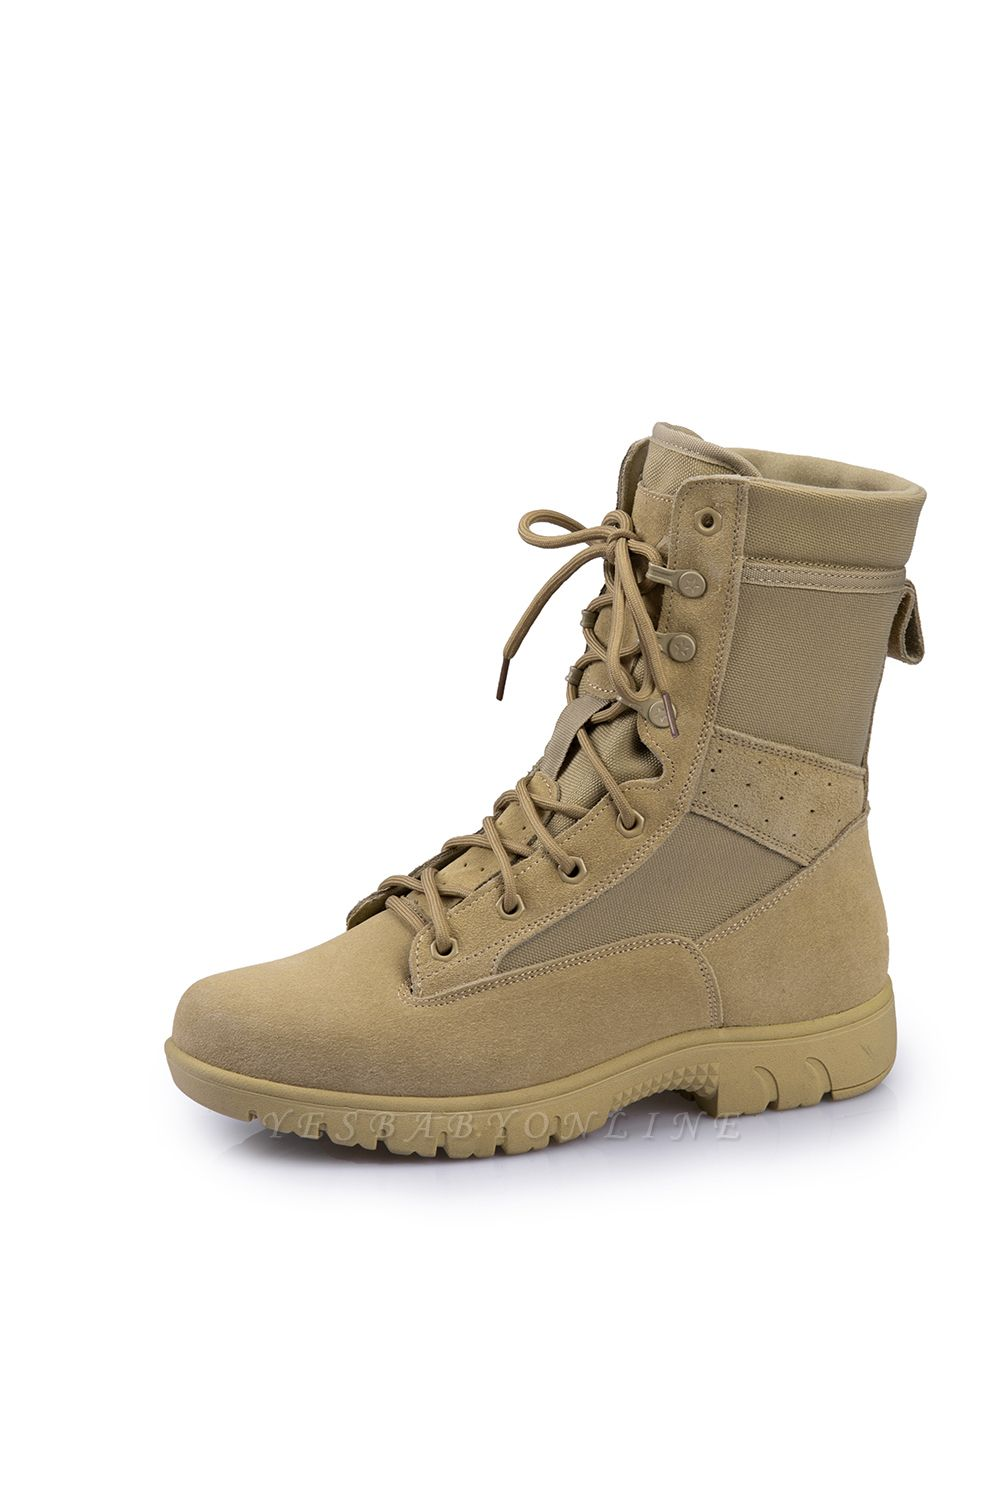 Tactical Boots Army Jungle Boots Waterproof Outdoor High top Sport Shoes On Sale